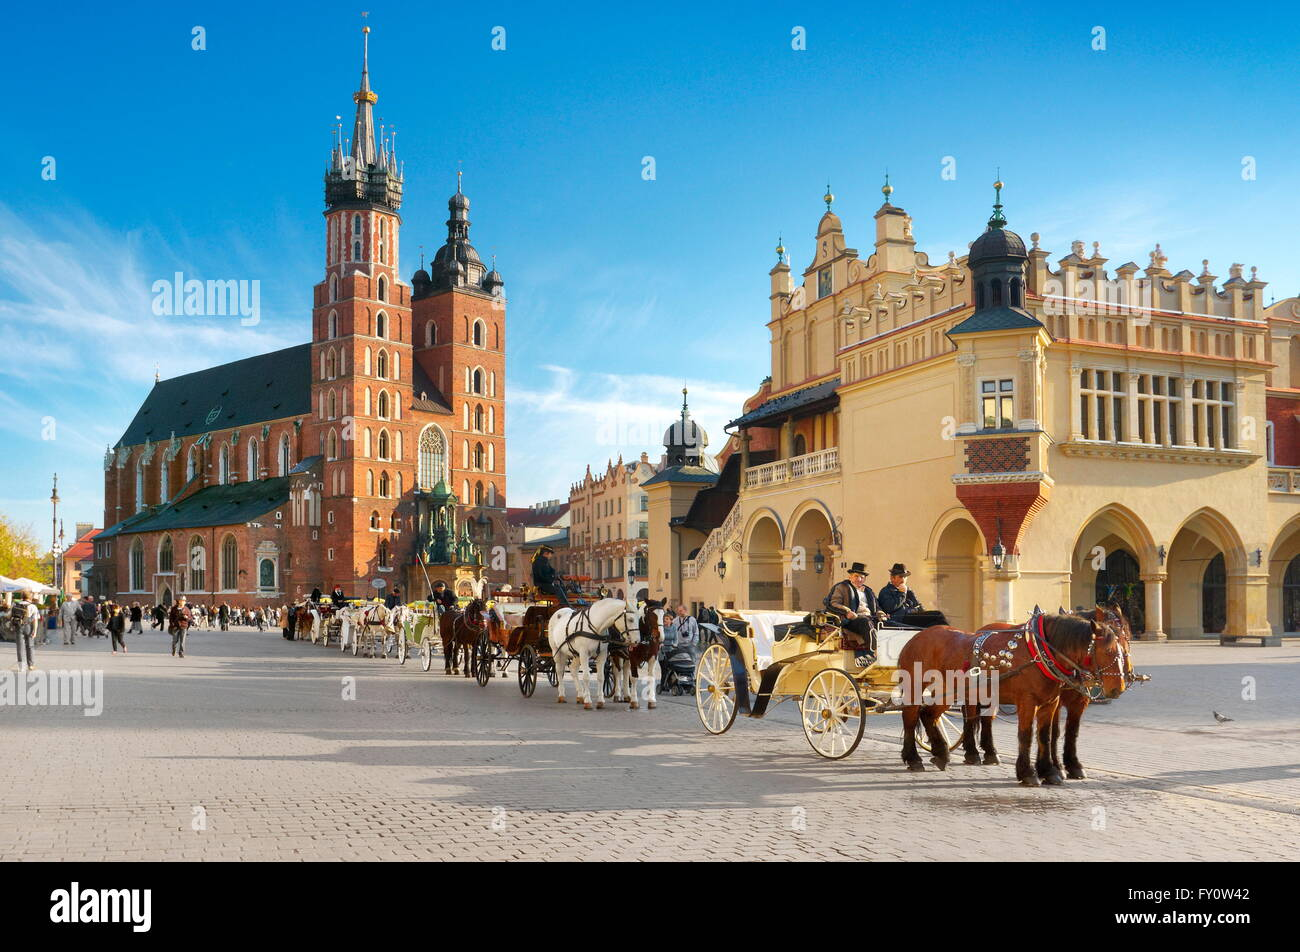 Horse carriage waiting for tourists, Market Square, Cracow Old Town, Poland - Stock Image